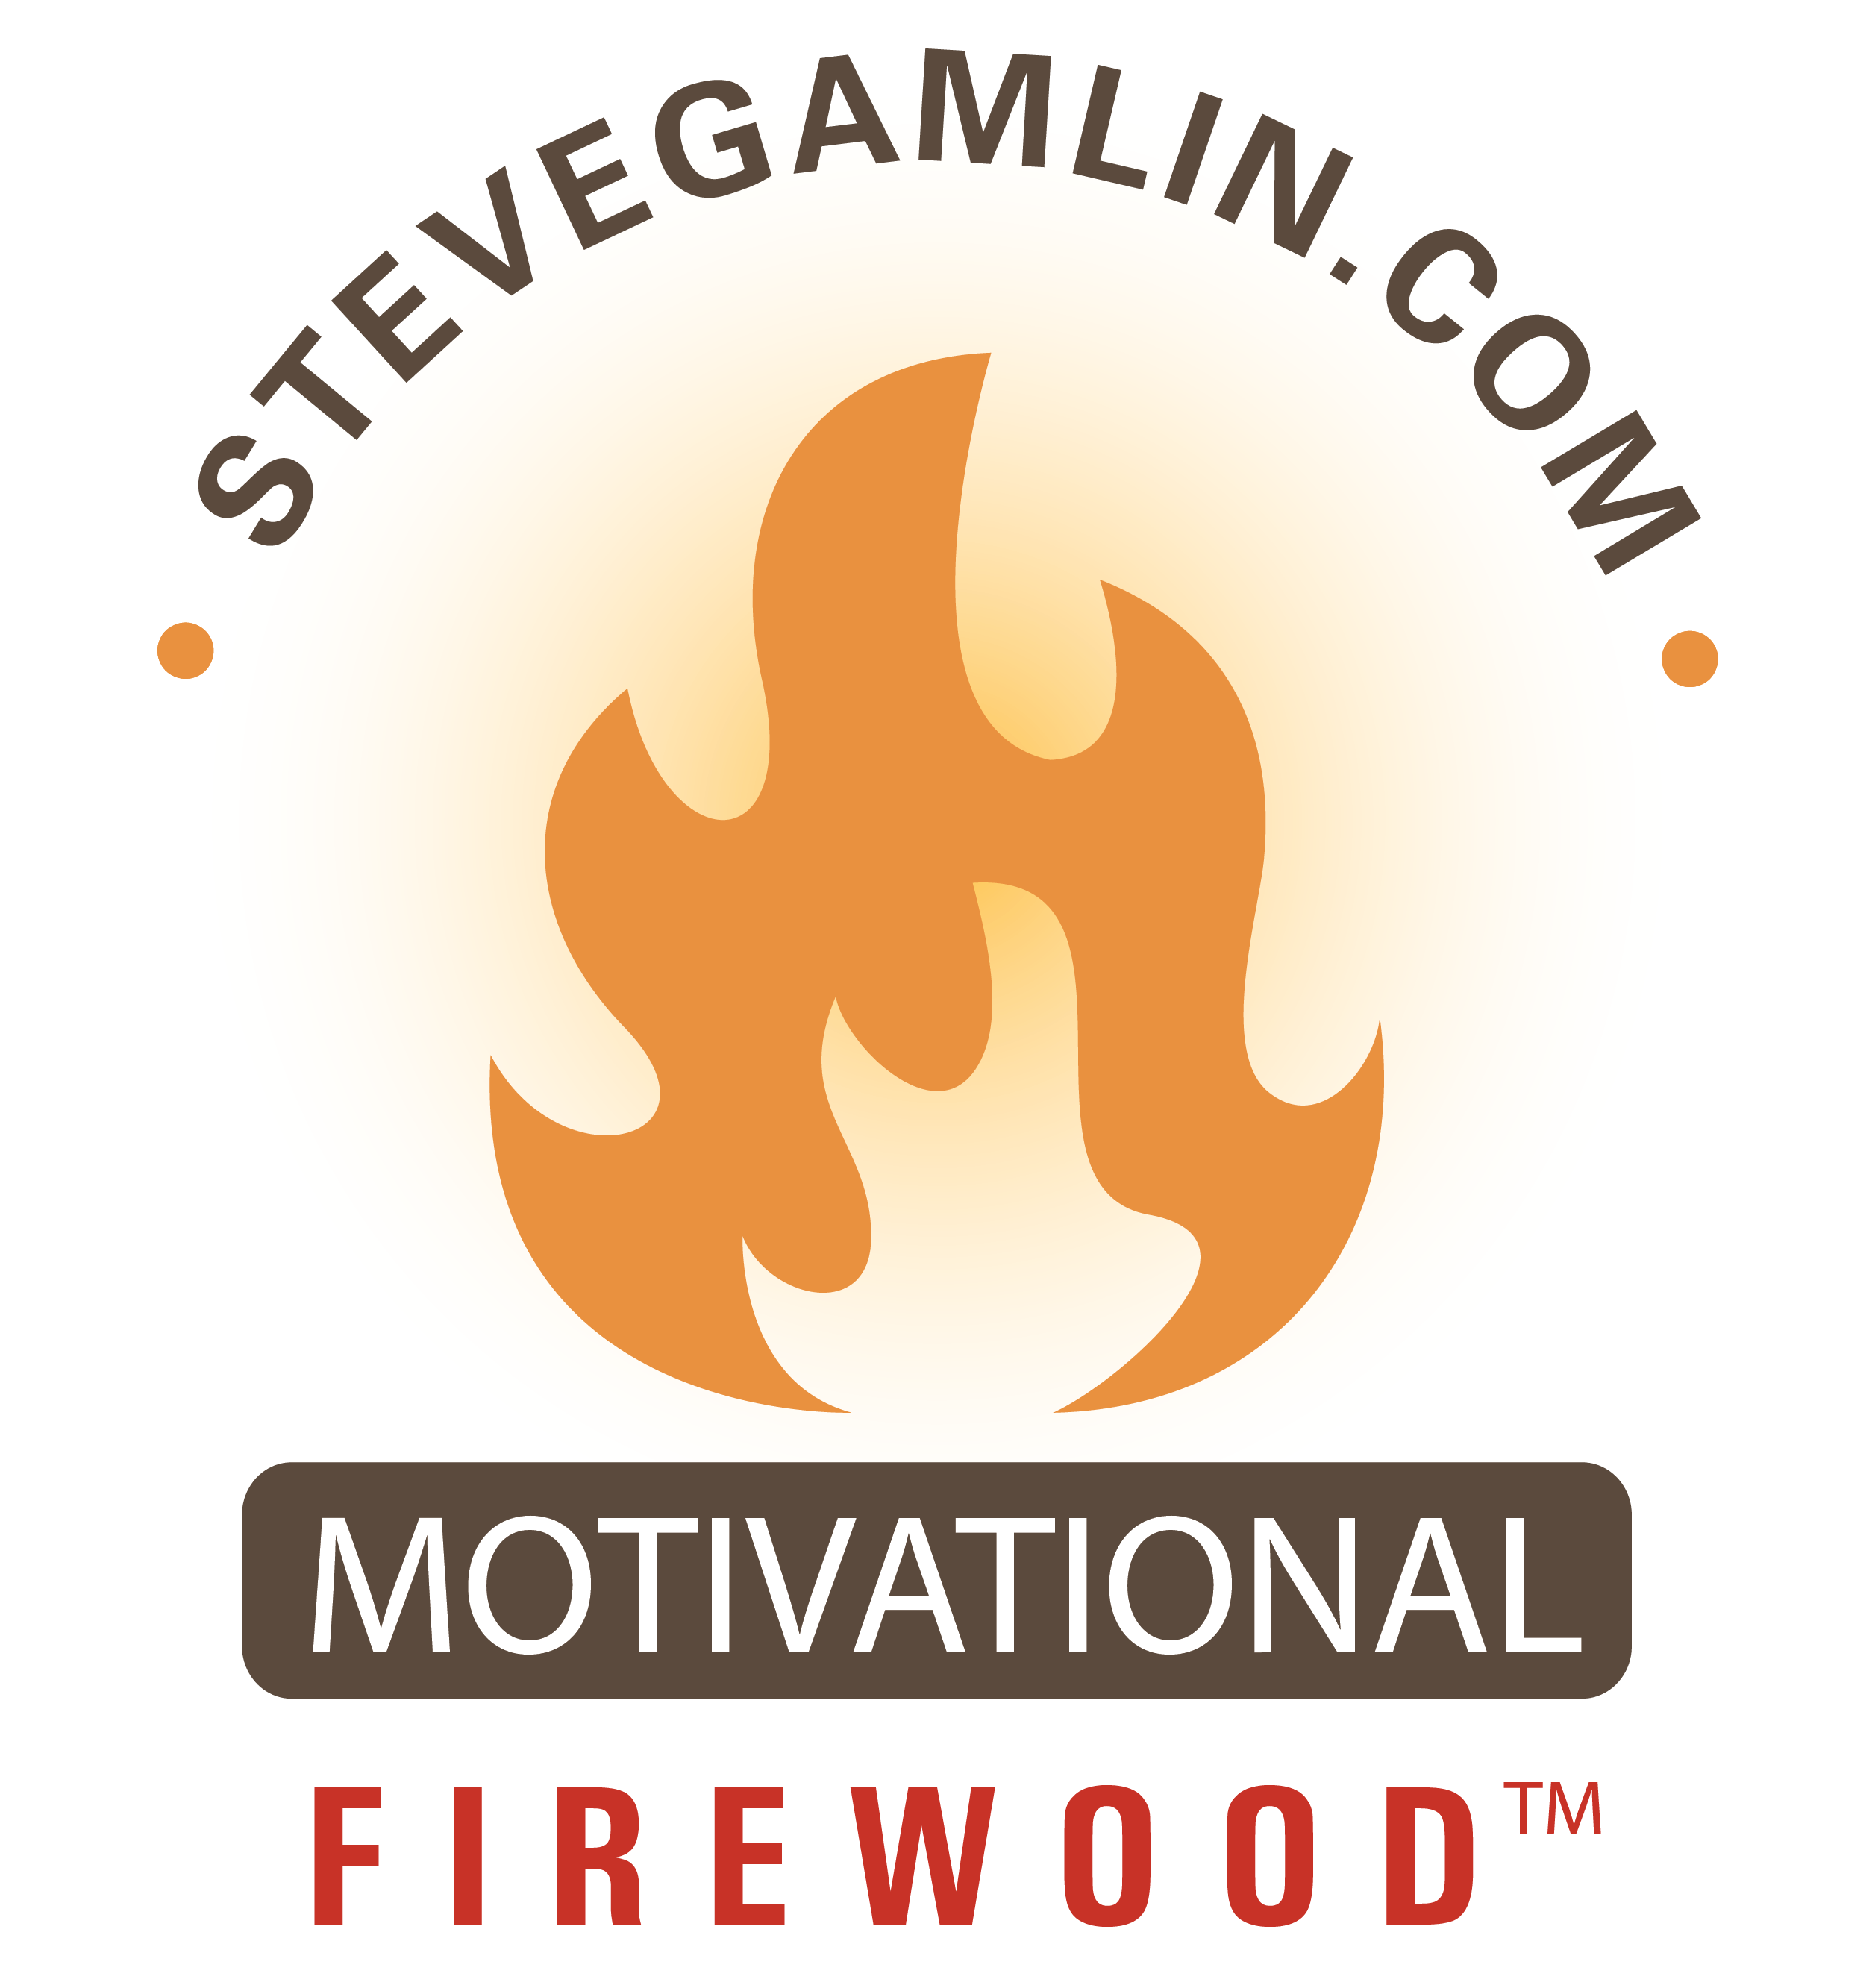 Steve Gamlin, the Motivational Firewood™ Guy!